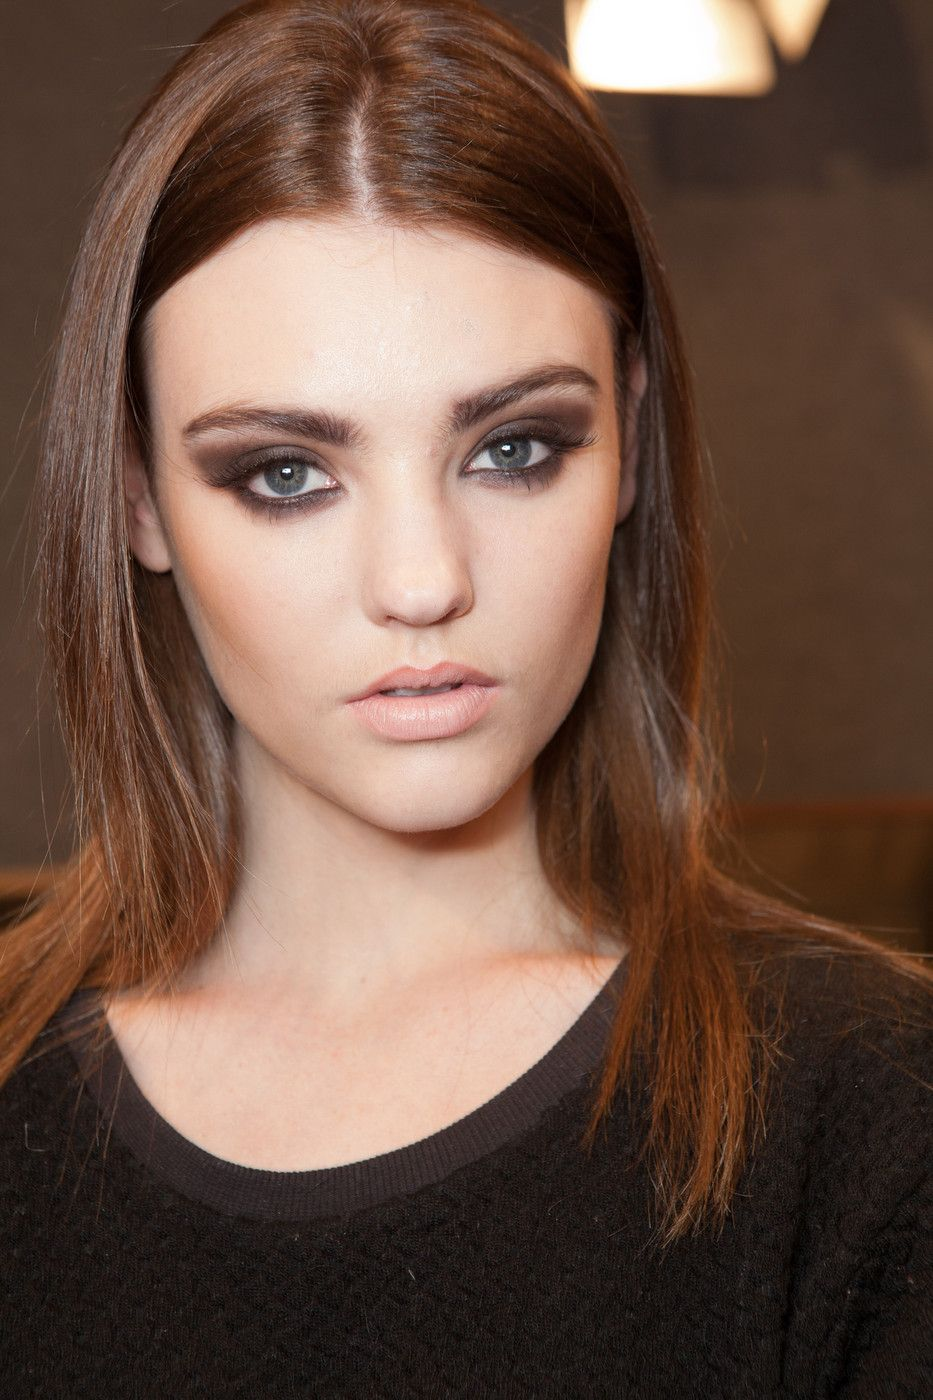 ~Soft features, edgy makeup.